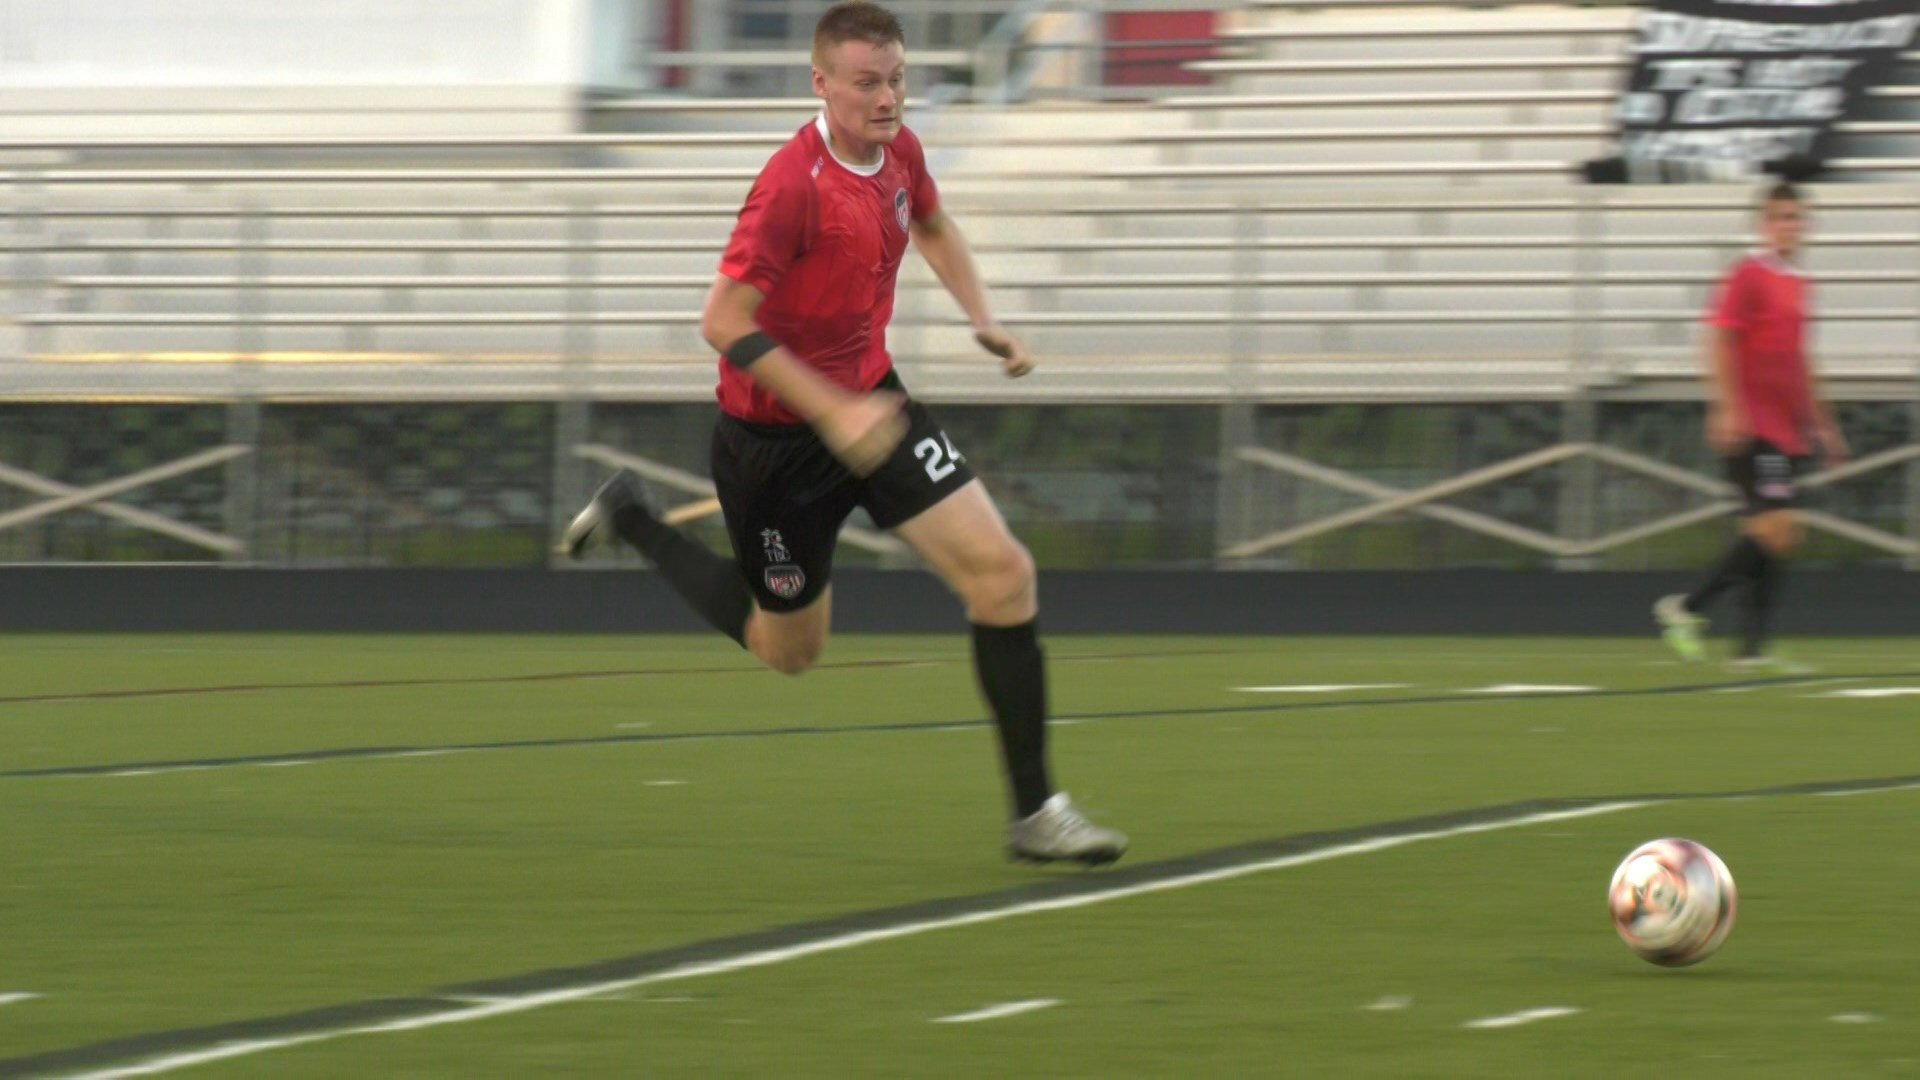 FC Alliance played FC Frederick to a 1-1 draw Monday night